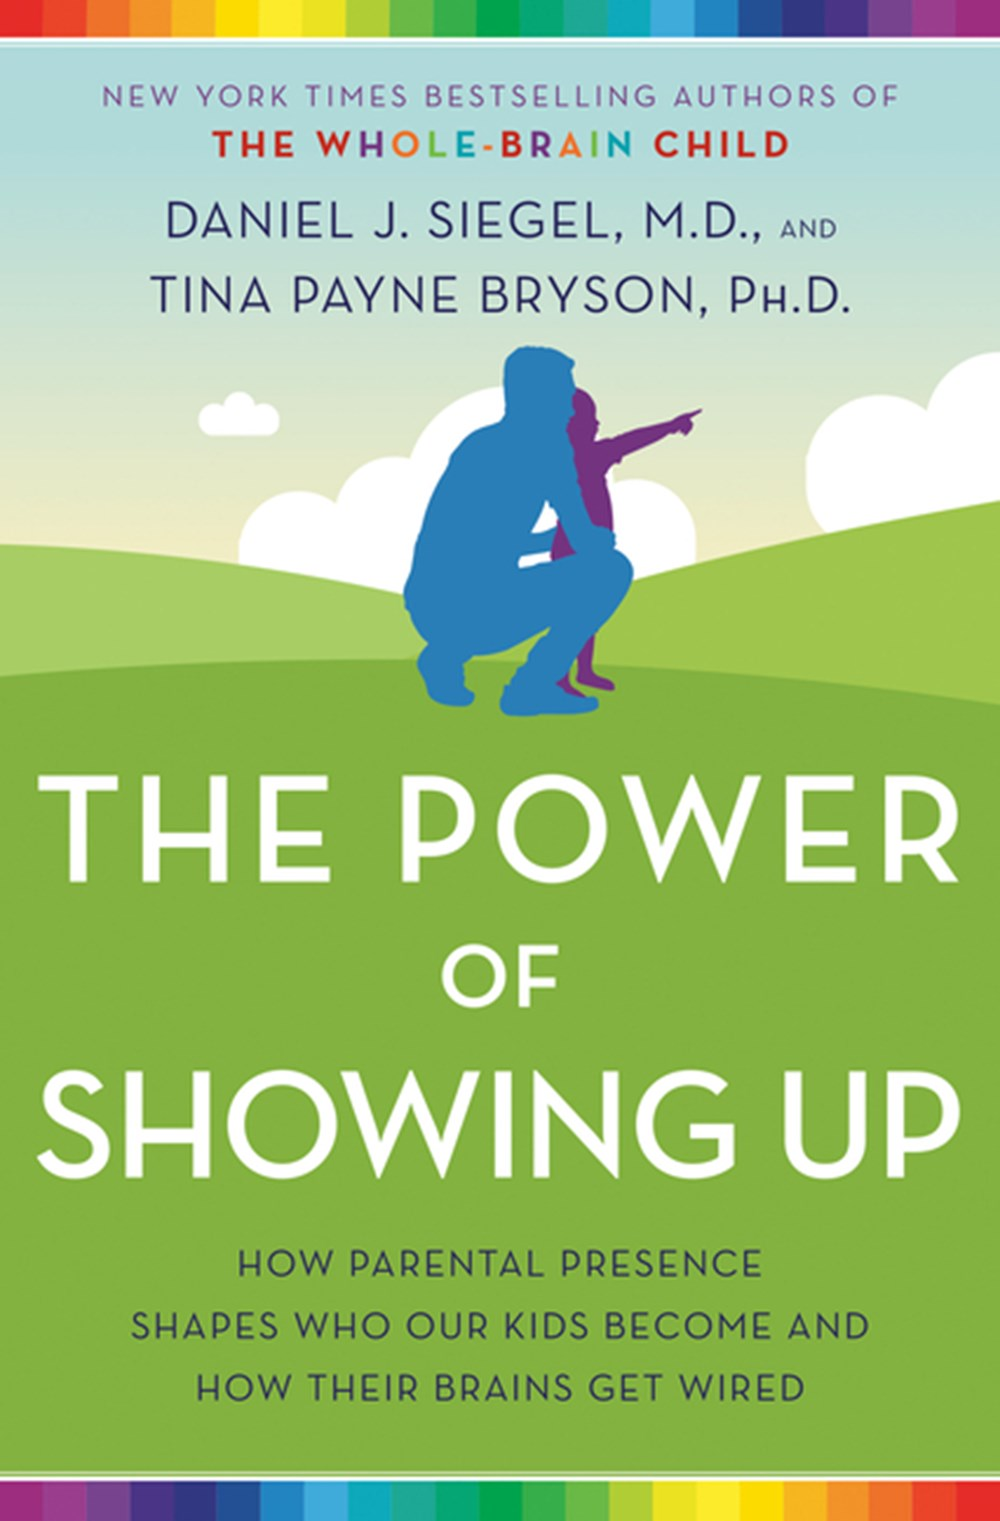 Power of Showing Up How Parental Presence Shapes Who Our Kids Become and How Their Brains Get Wired